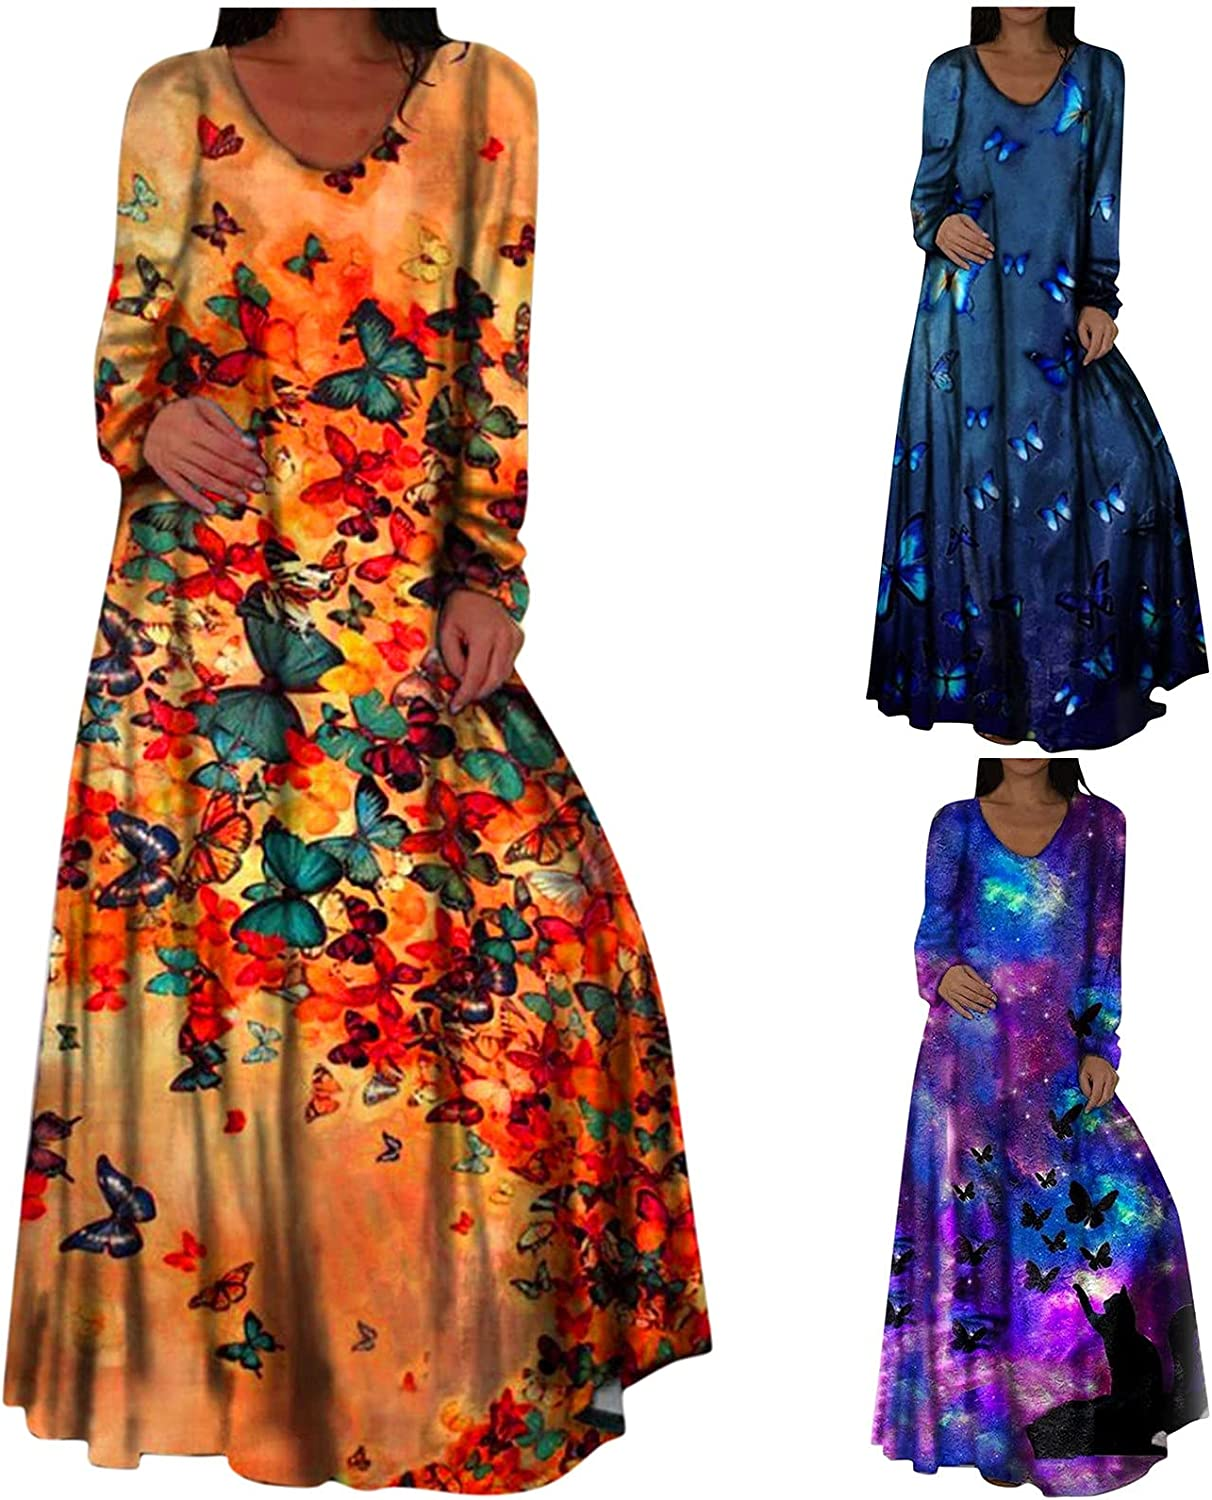 Long Dresses for Women Party Plus Size Classic Hide Tummy Autumn Long Sleeve Sundress Polyester